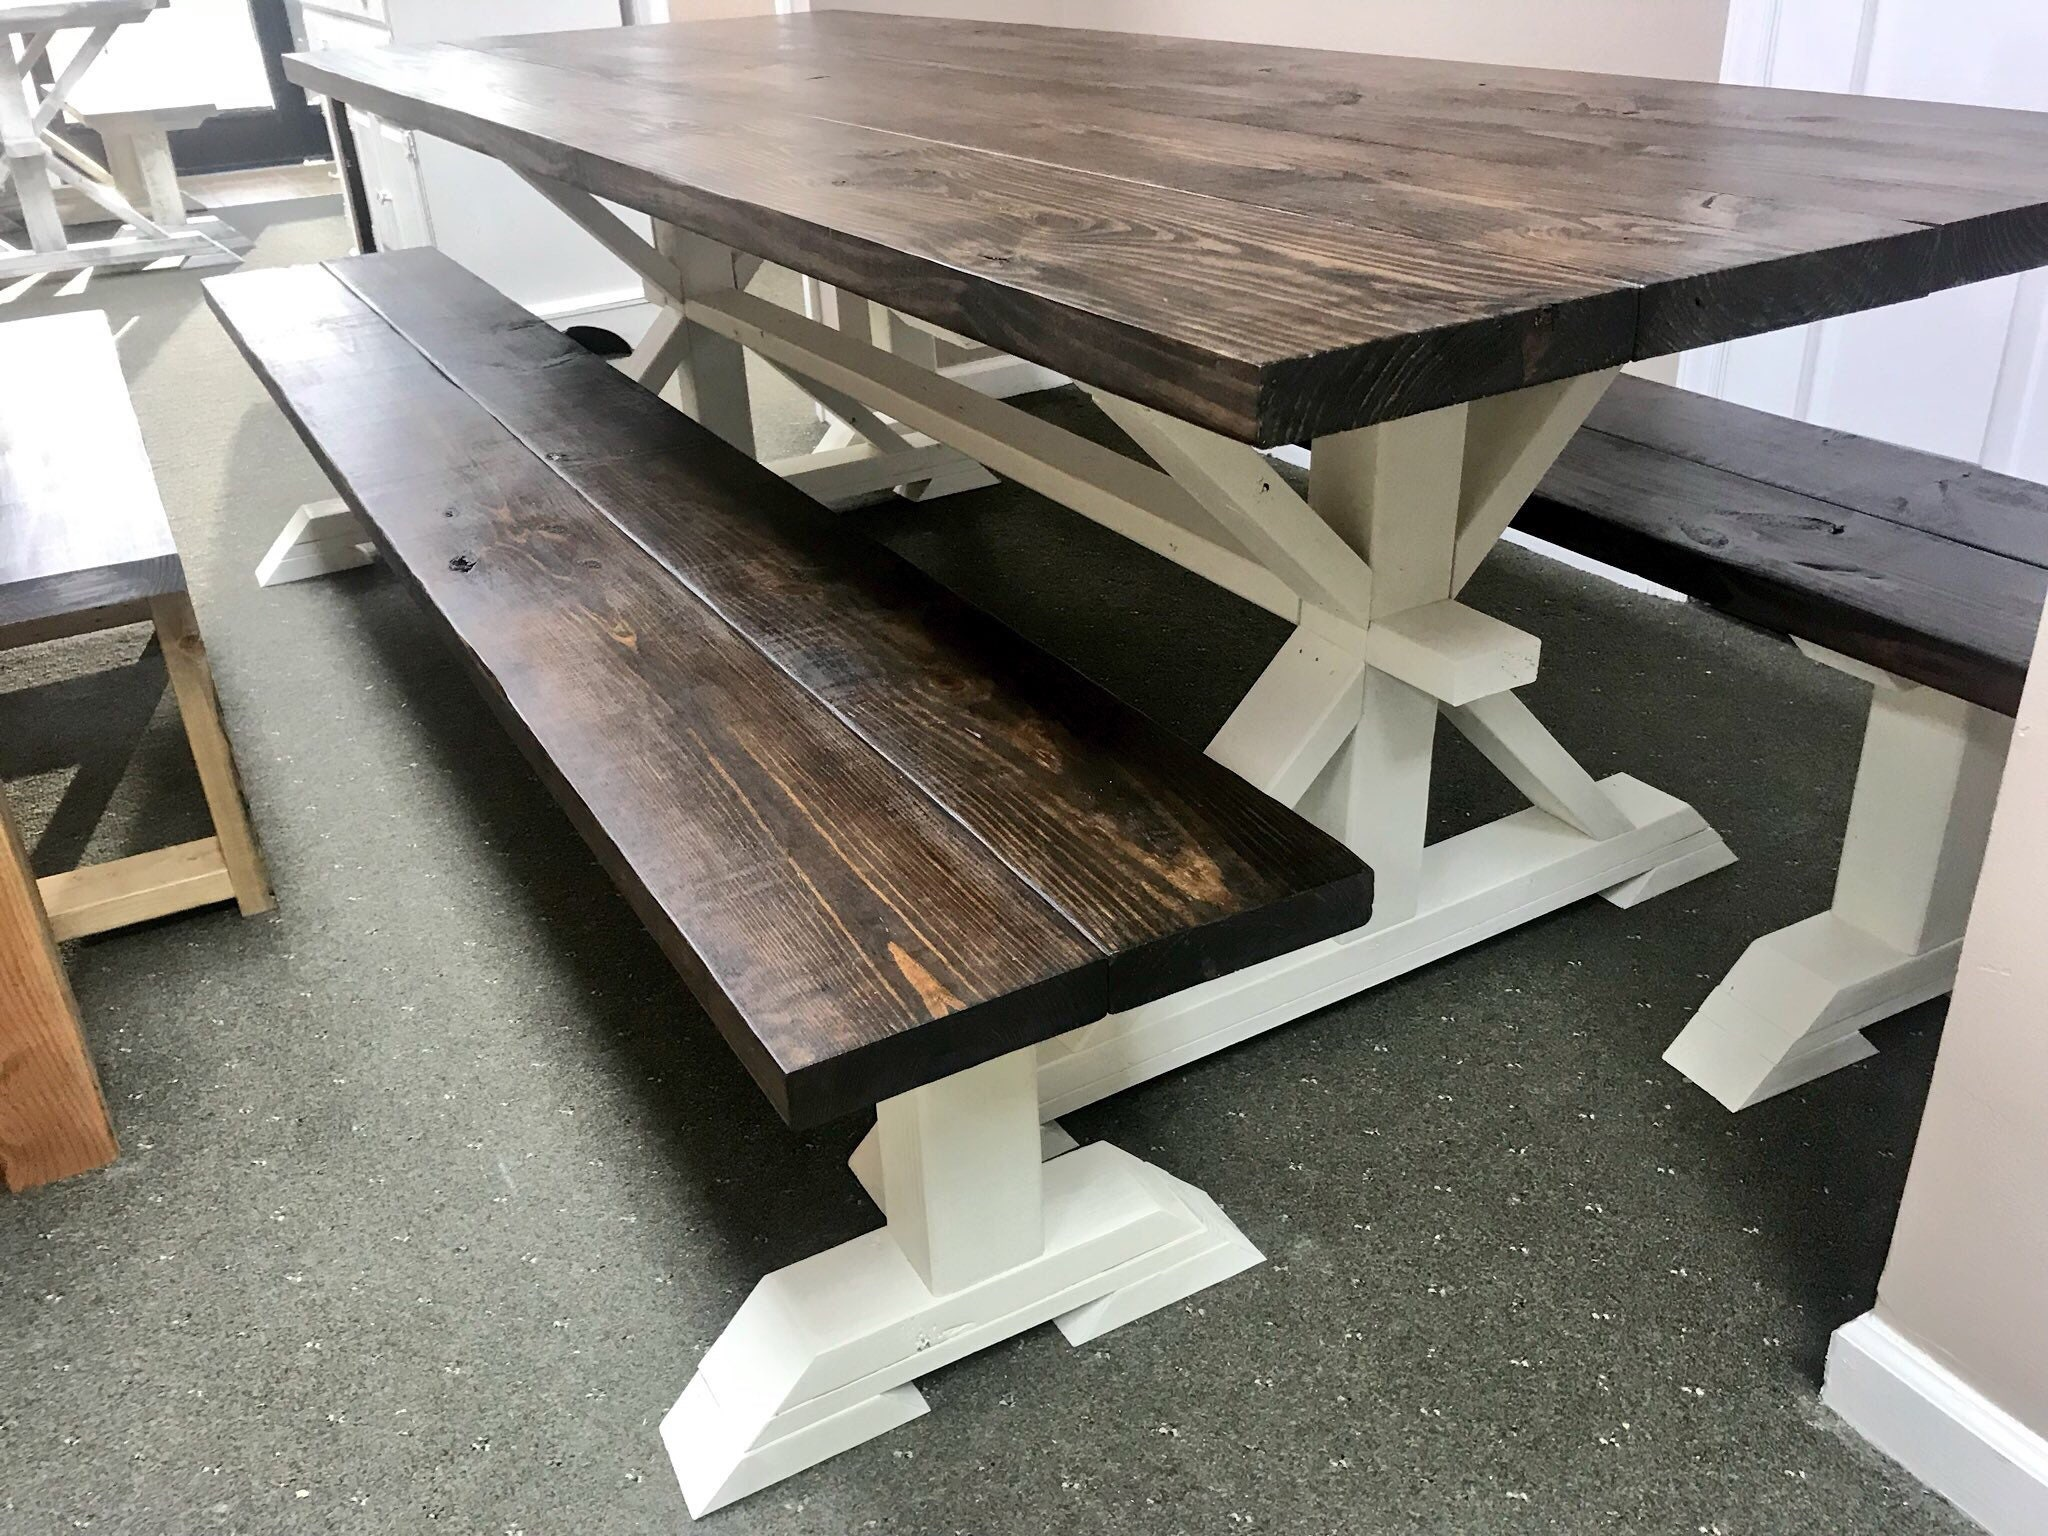 8ft Rustic Farmhouse Table With Long Benches Banquet